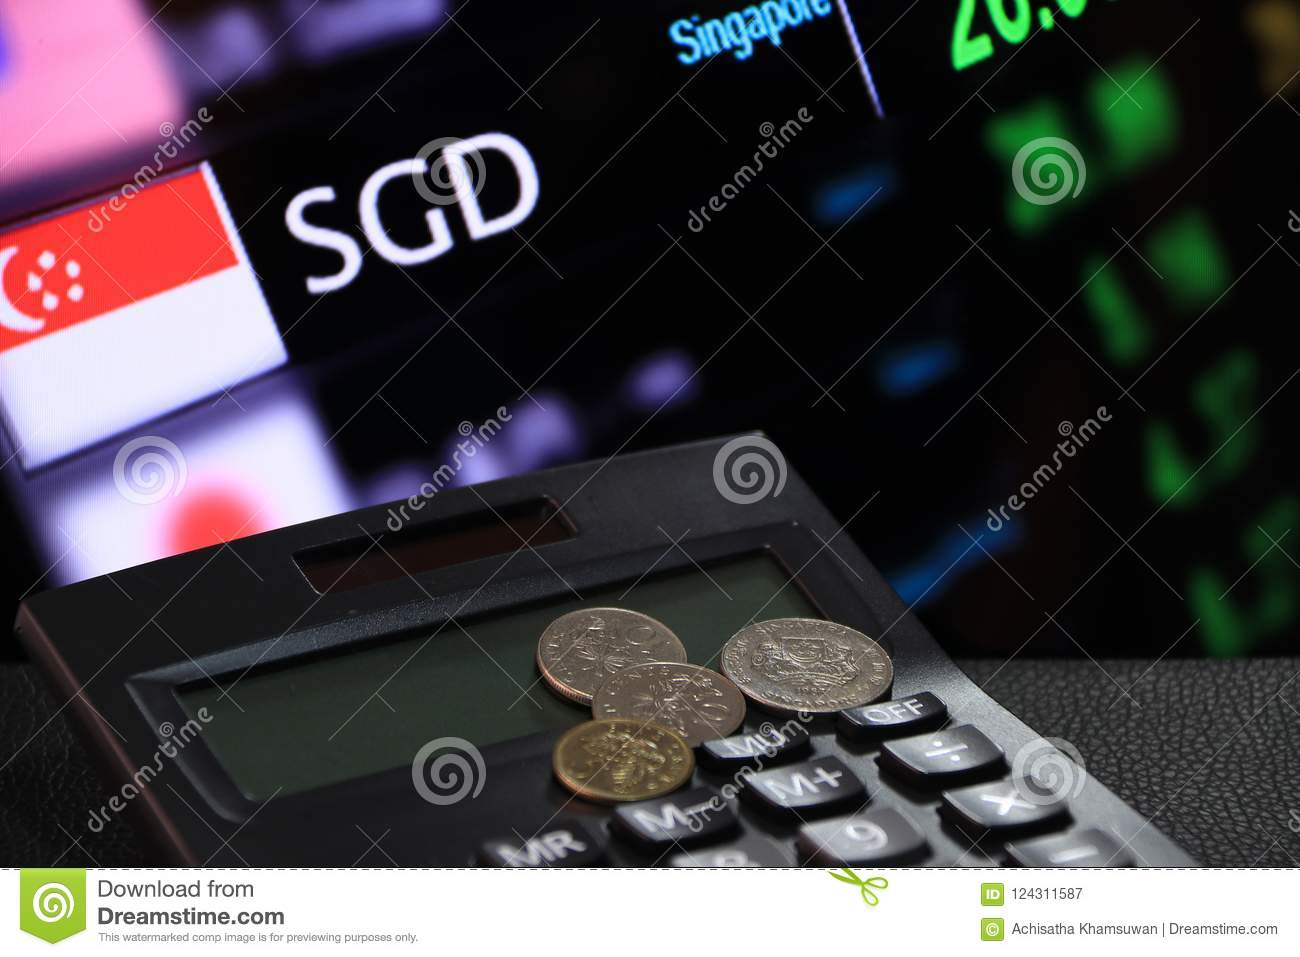 Singapore Cents Coin Sgd On Black Calculator With Digital Board Of Currency Exchange Money Background